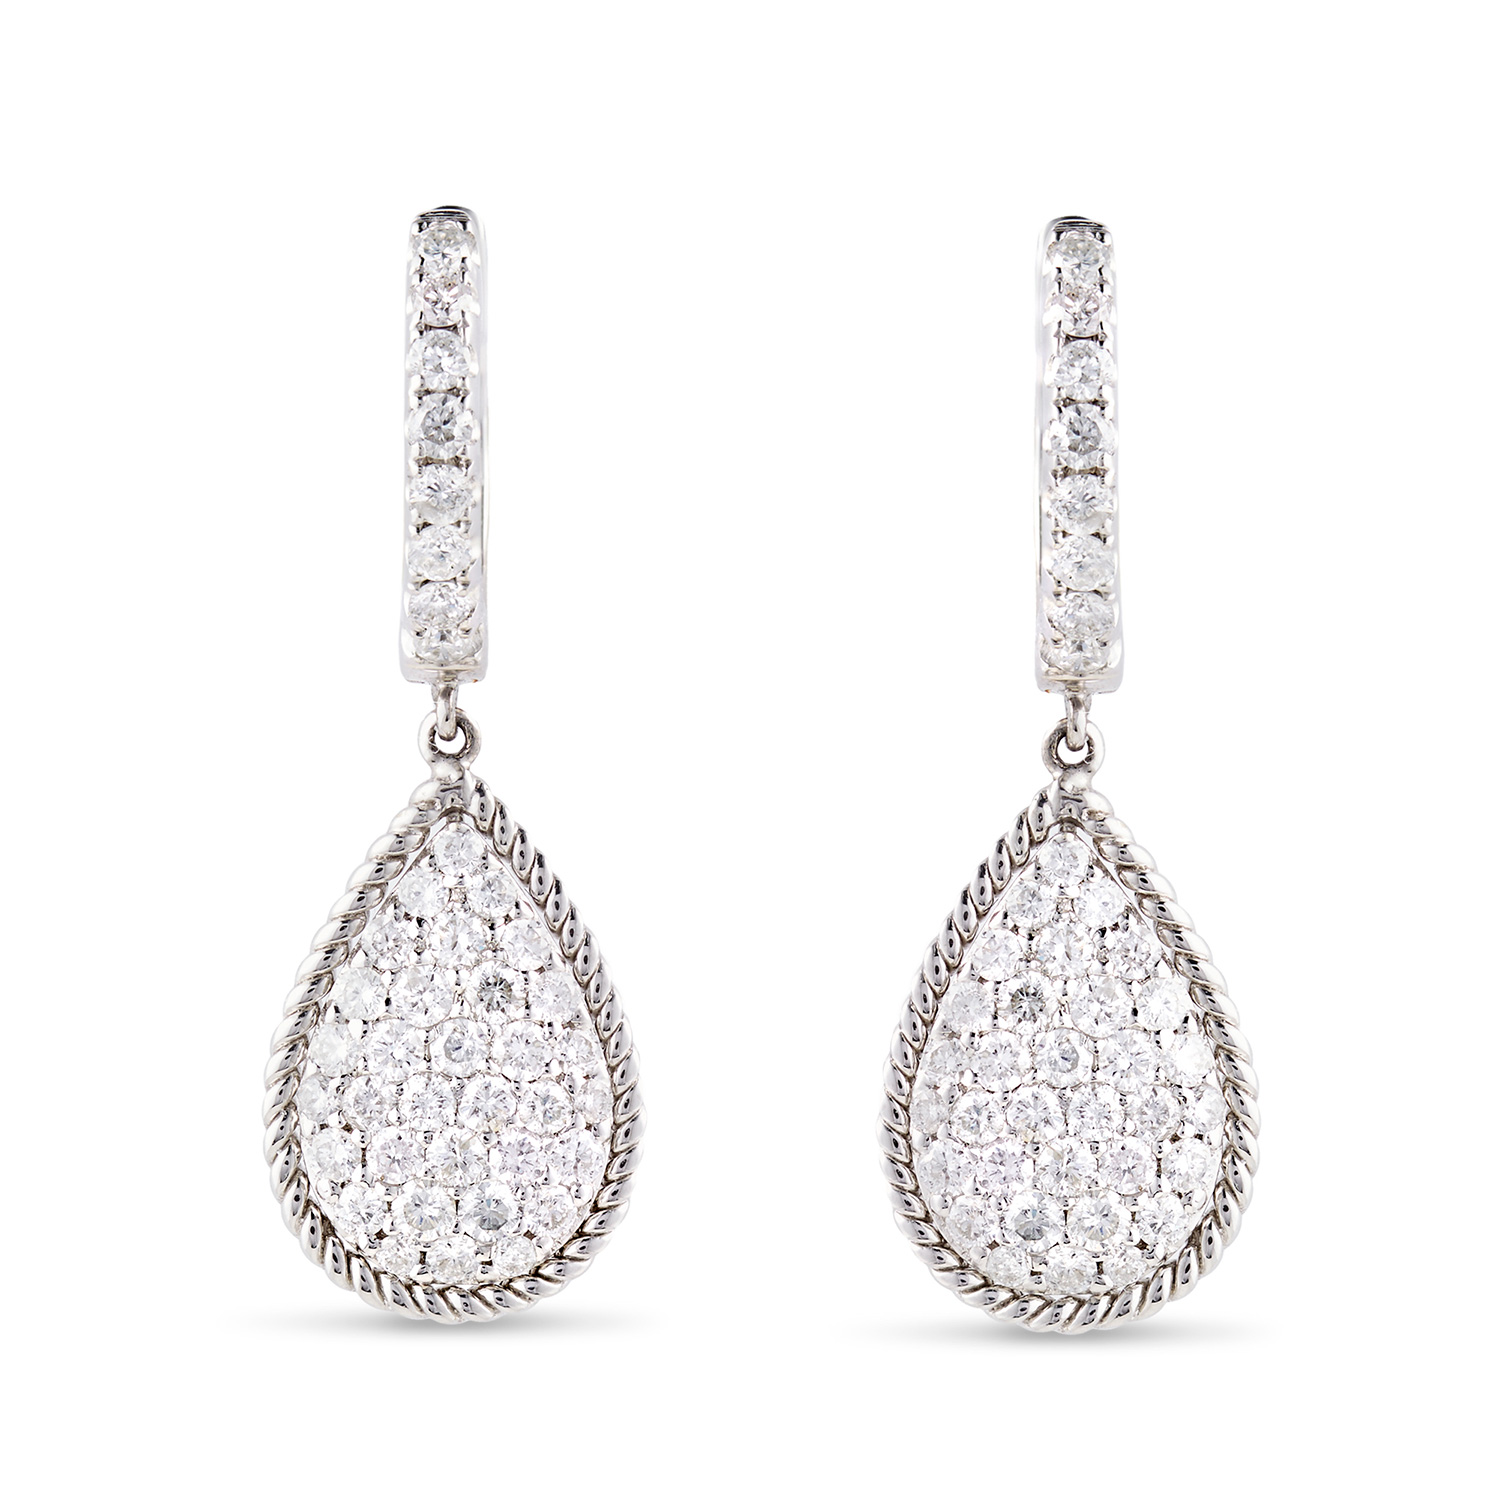 E Commerce Product Jewelry Photography on White Background Dallas Texas Teardrop Earrings